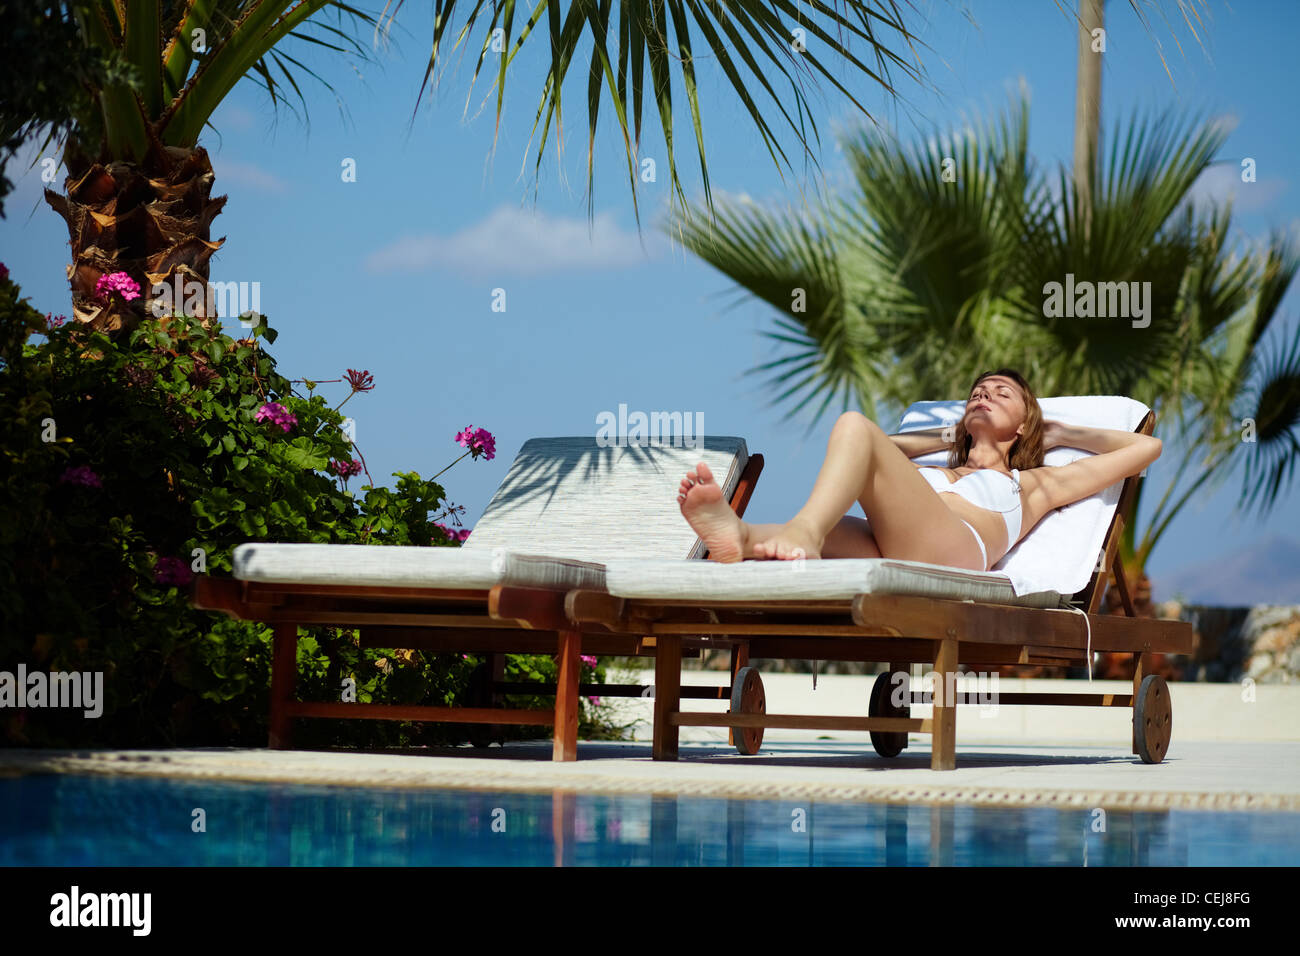 Young woman sunbathing by the pool - Stock Image